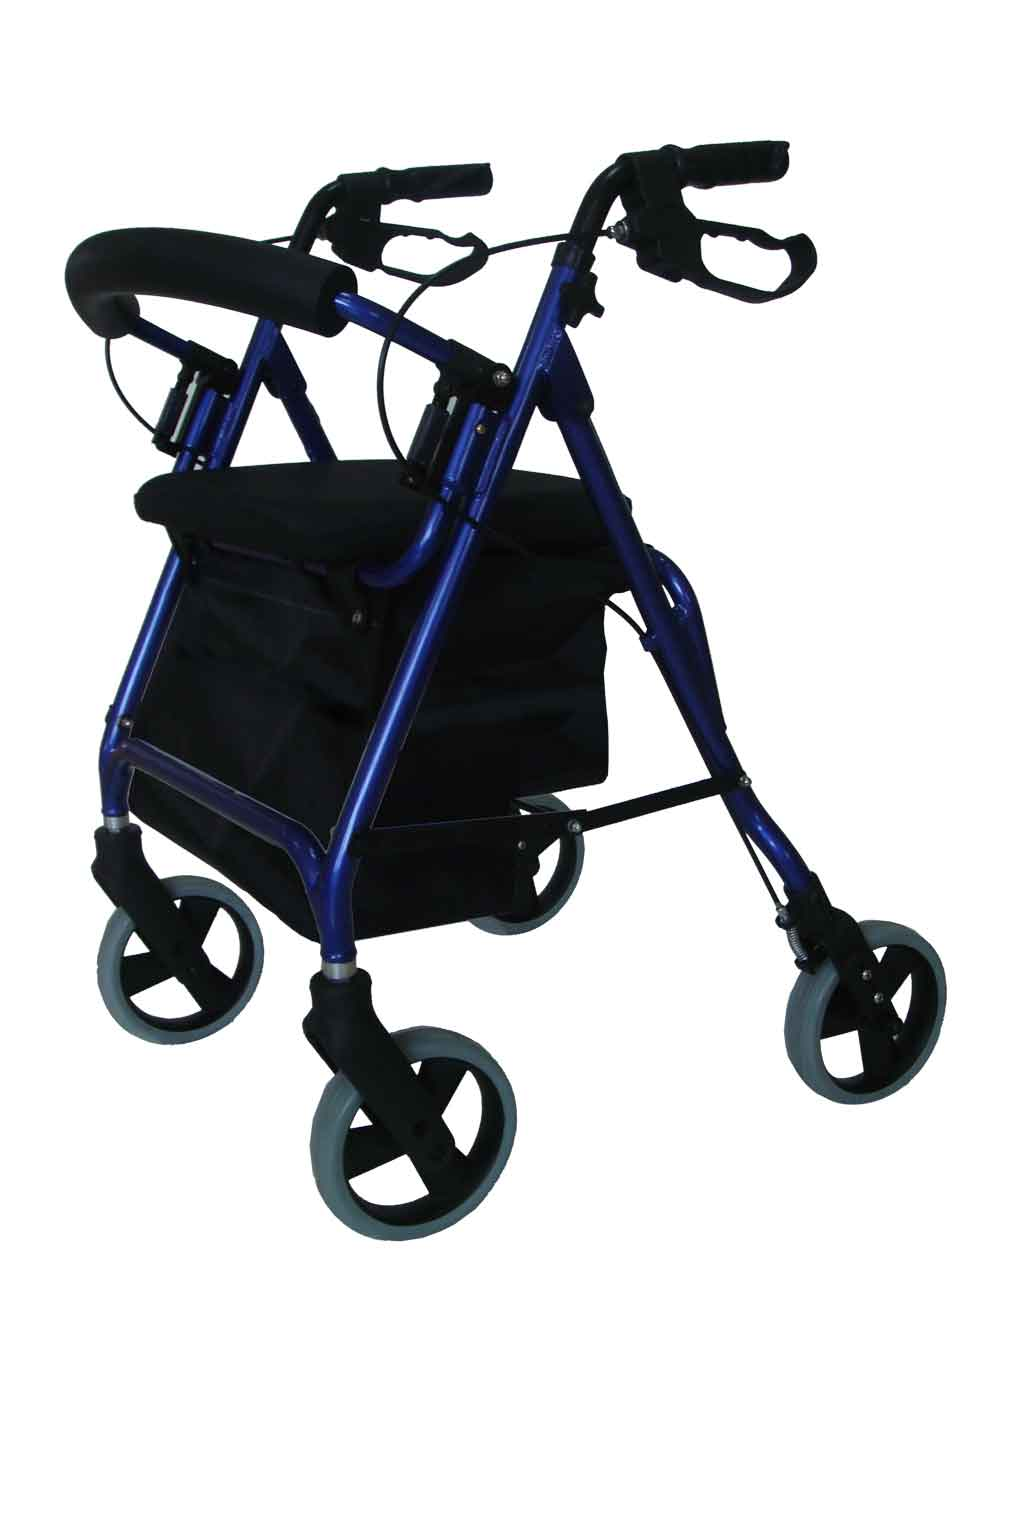 bariatric rollators, duty rollator, rollator how to choose com uk, rollators with seat